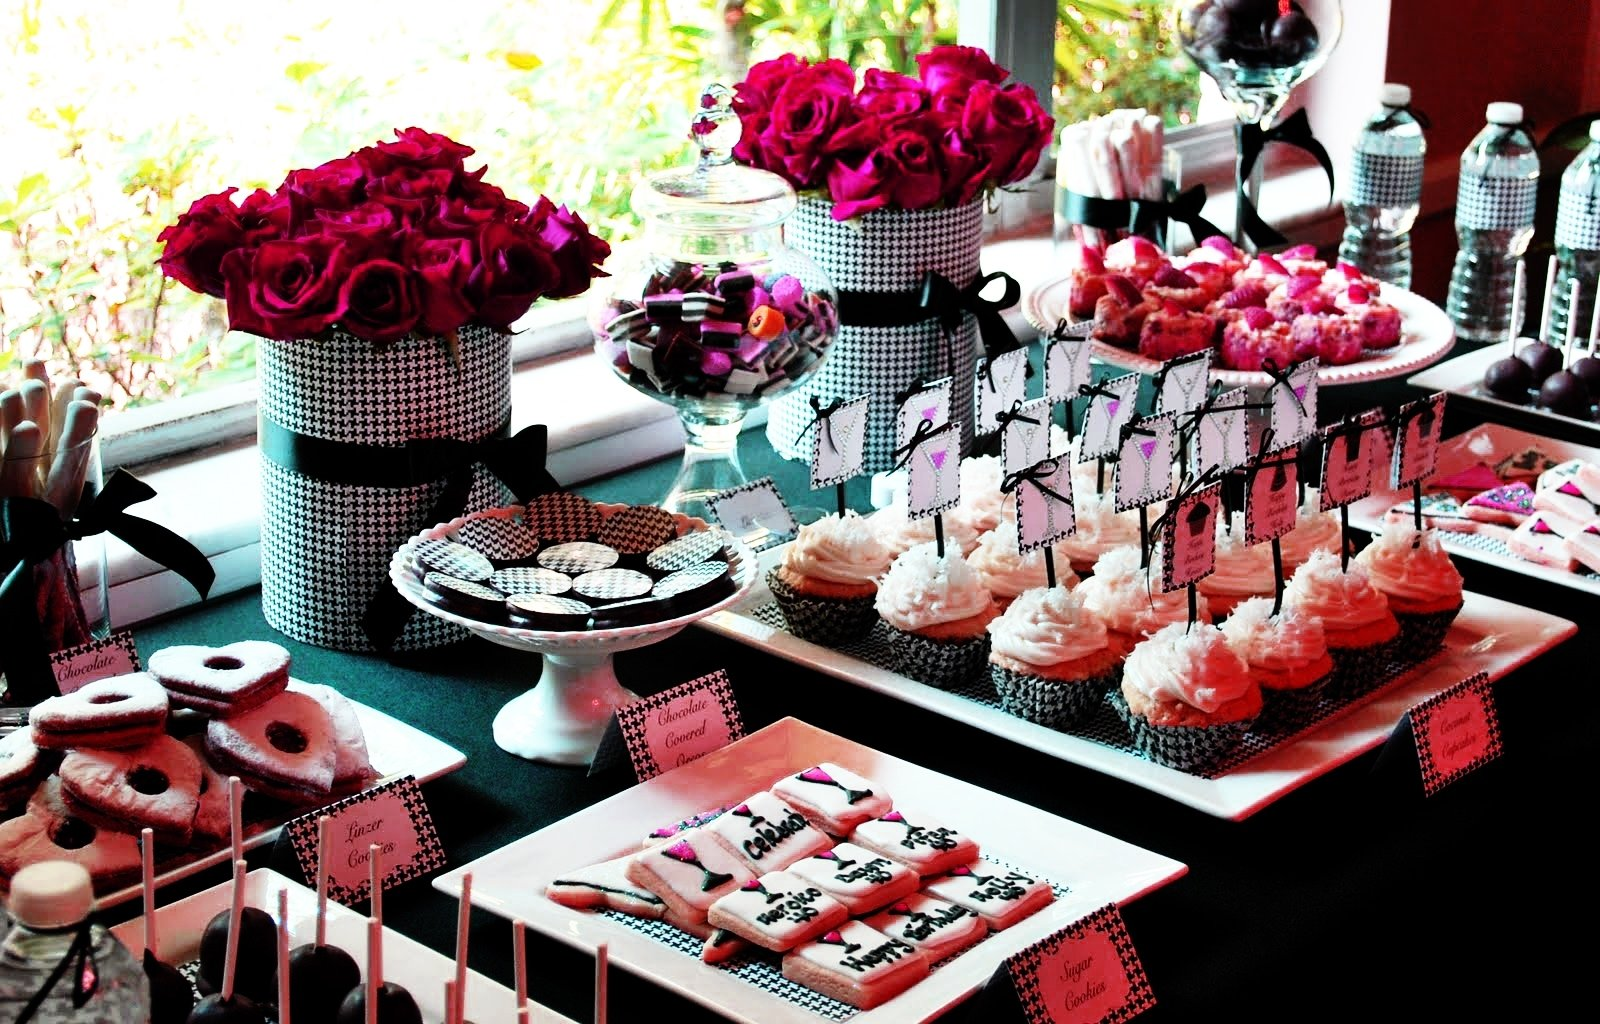 10 Fabulous Great Party Ideas For Adults pinjoanne wofford on great ideas pinterest adult birthday 1 2020